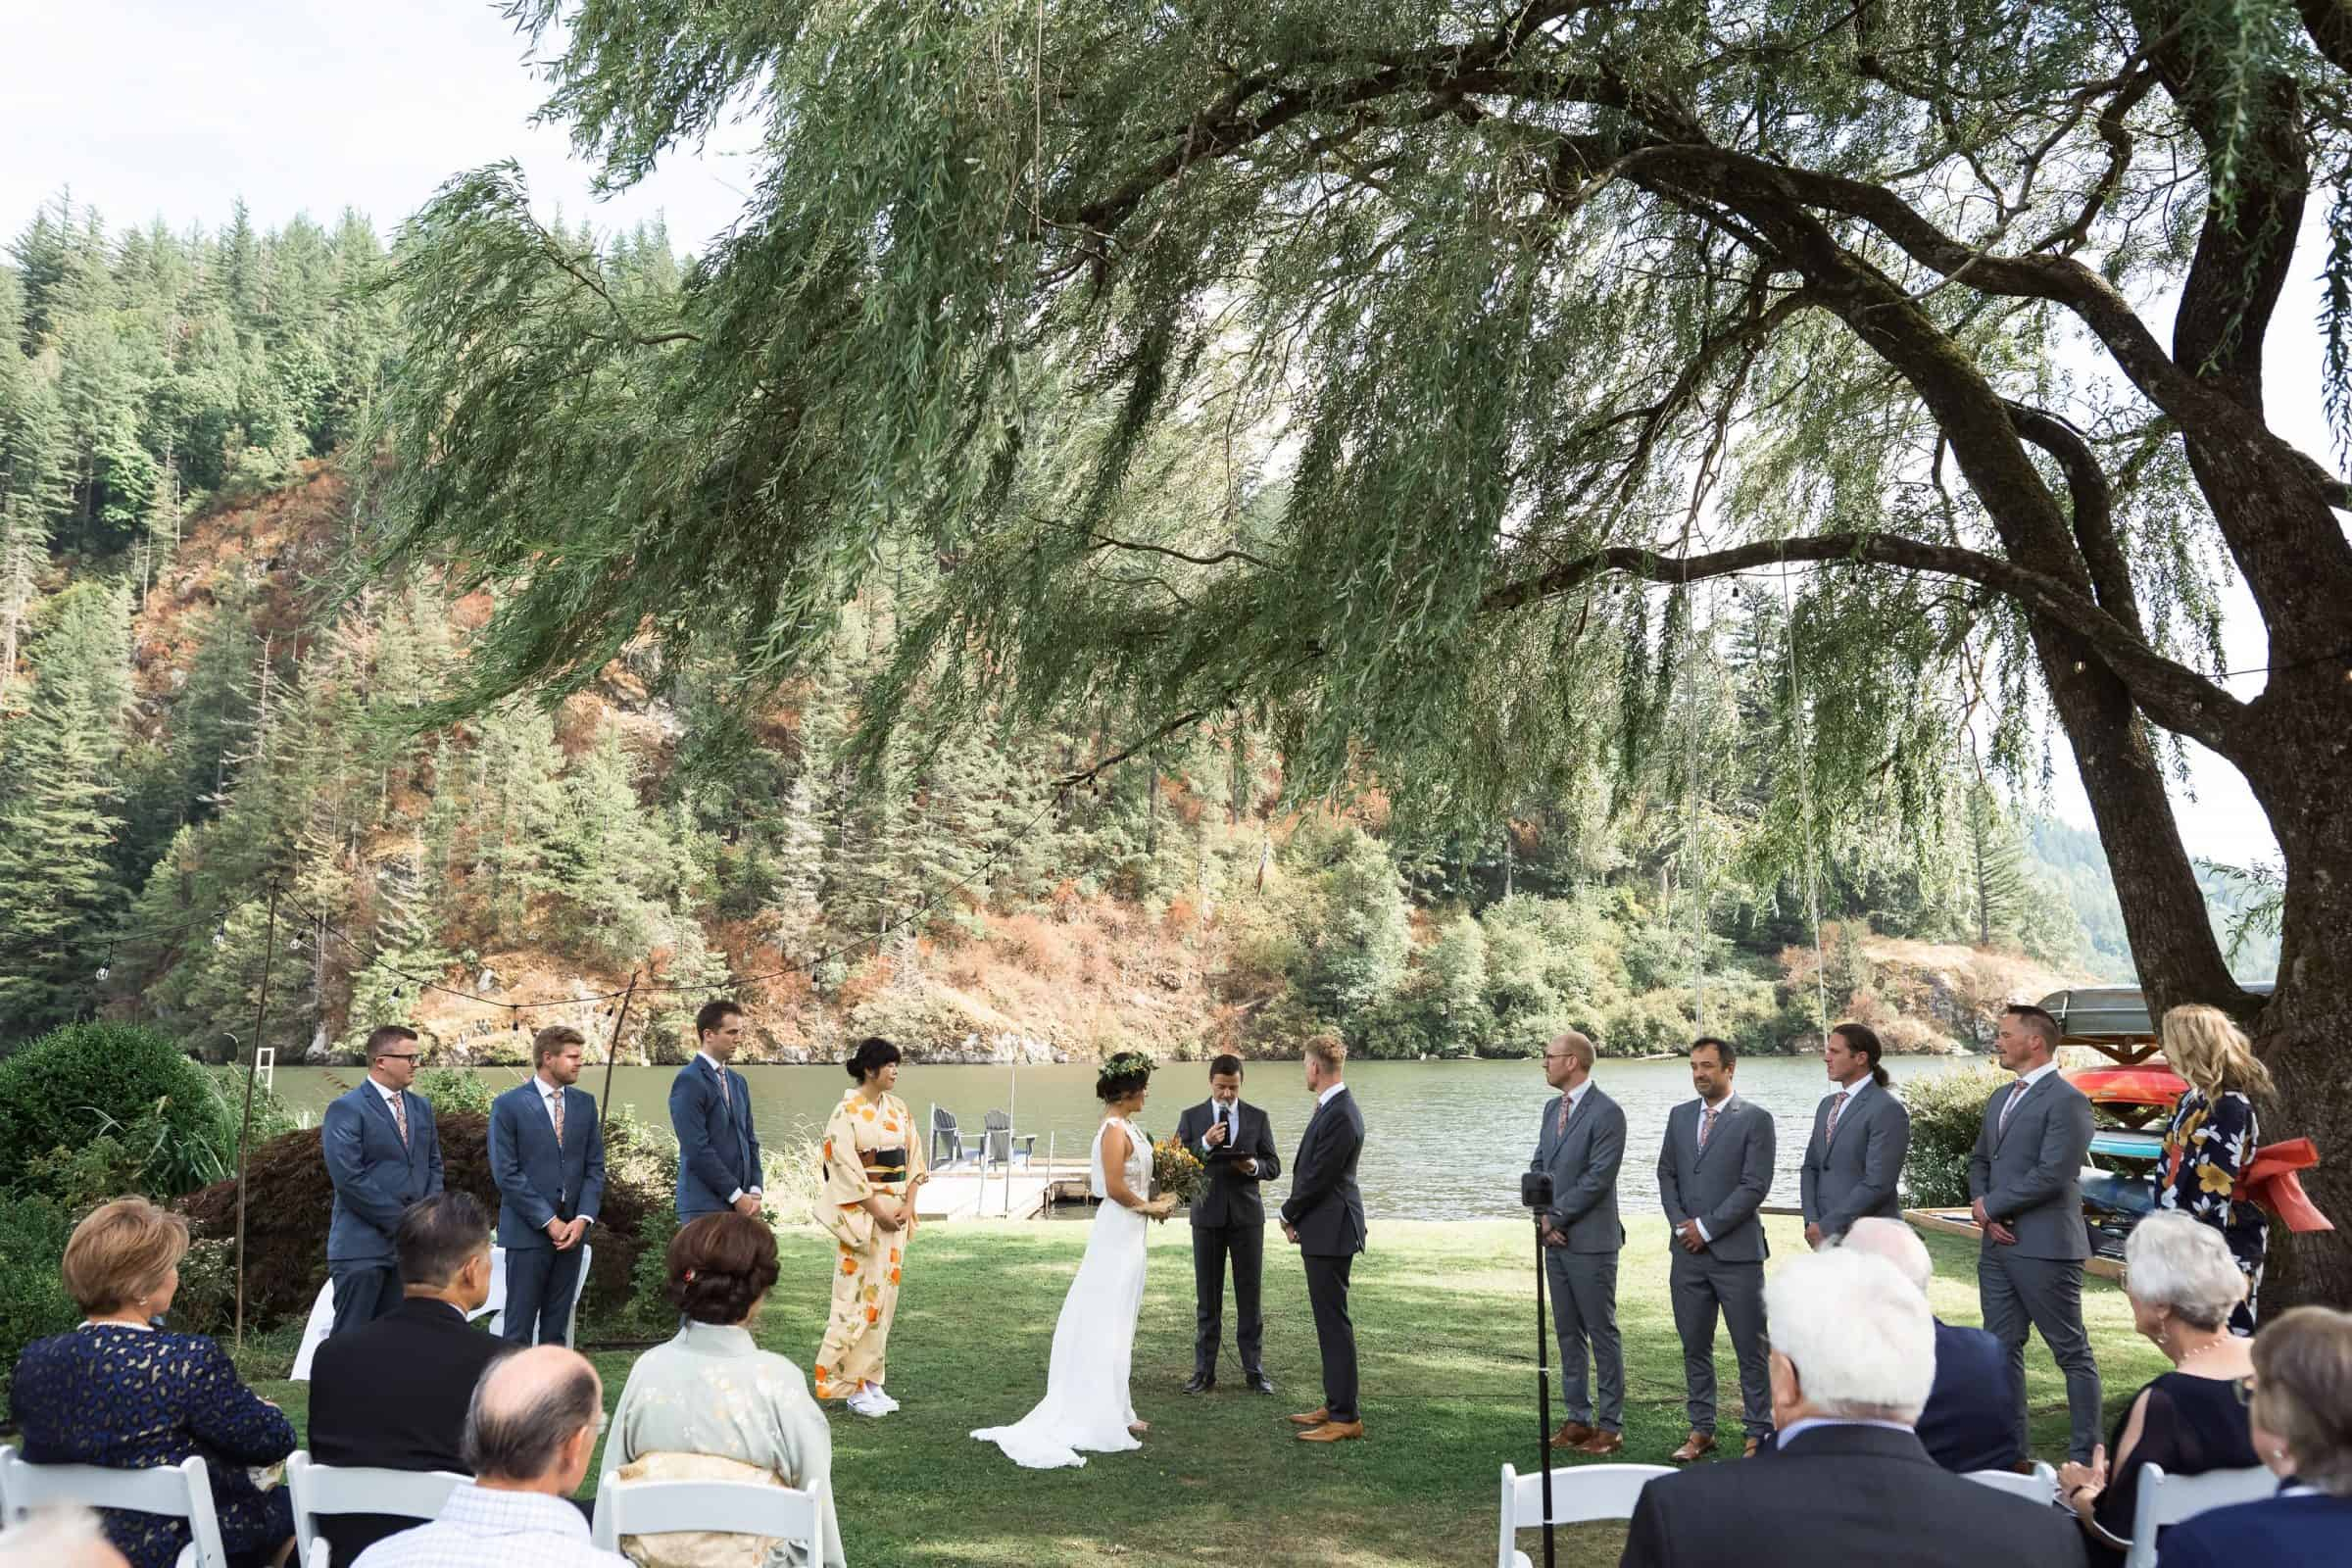 pull back of bride, groom, and wedding party in backyard wedding under willow tree with river in background